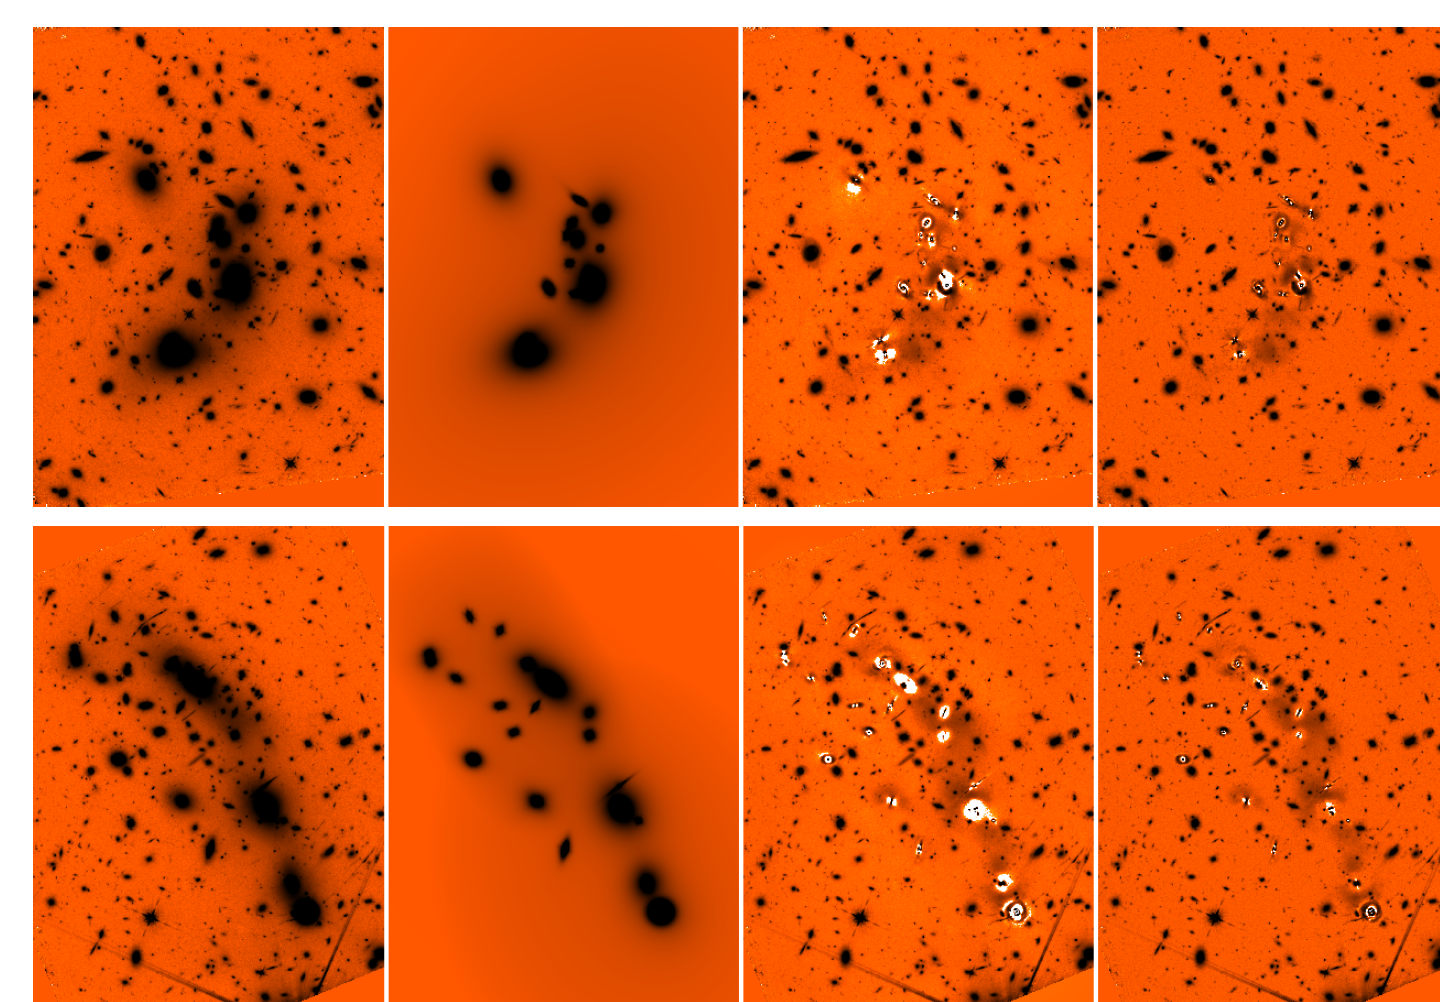 Eects of the procedure on the A2744 (top) and M0416 (bottom) H160 image. Left to right: original image, models of galaxies and ICL after STEP 4, processed image after subtraction of the models, nal processed image after median ltering (STEP 5). All images have logarithmic greyscale with the same cuts.